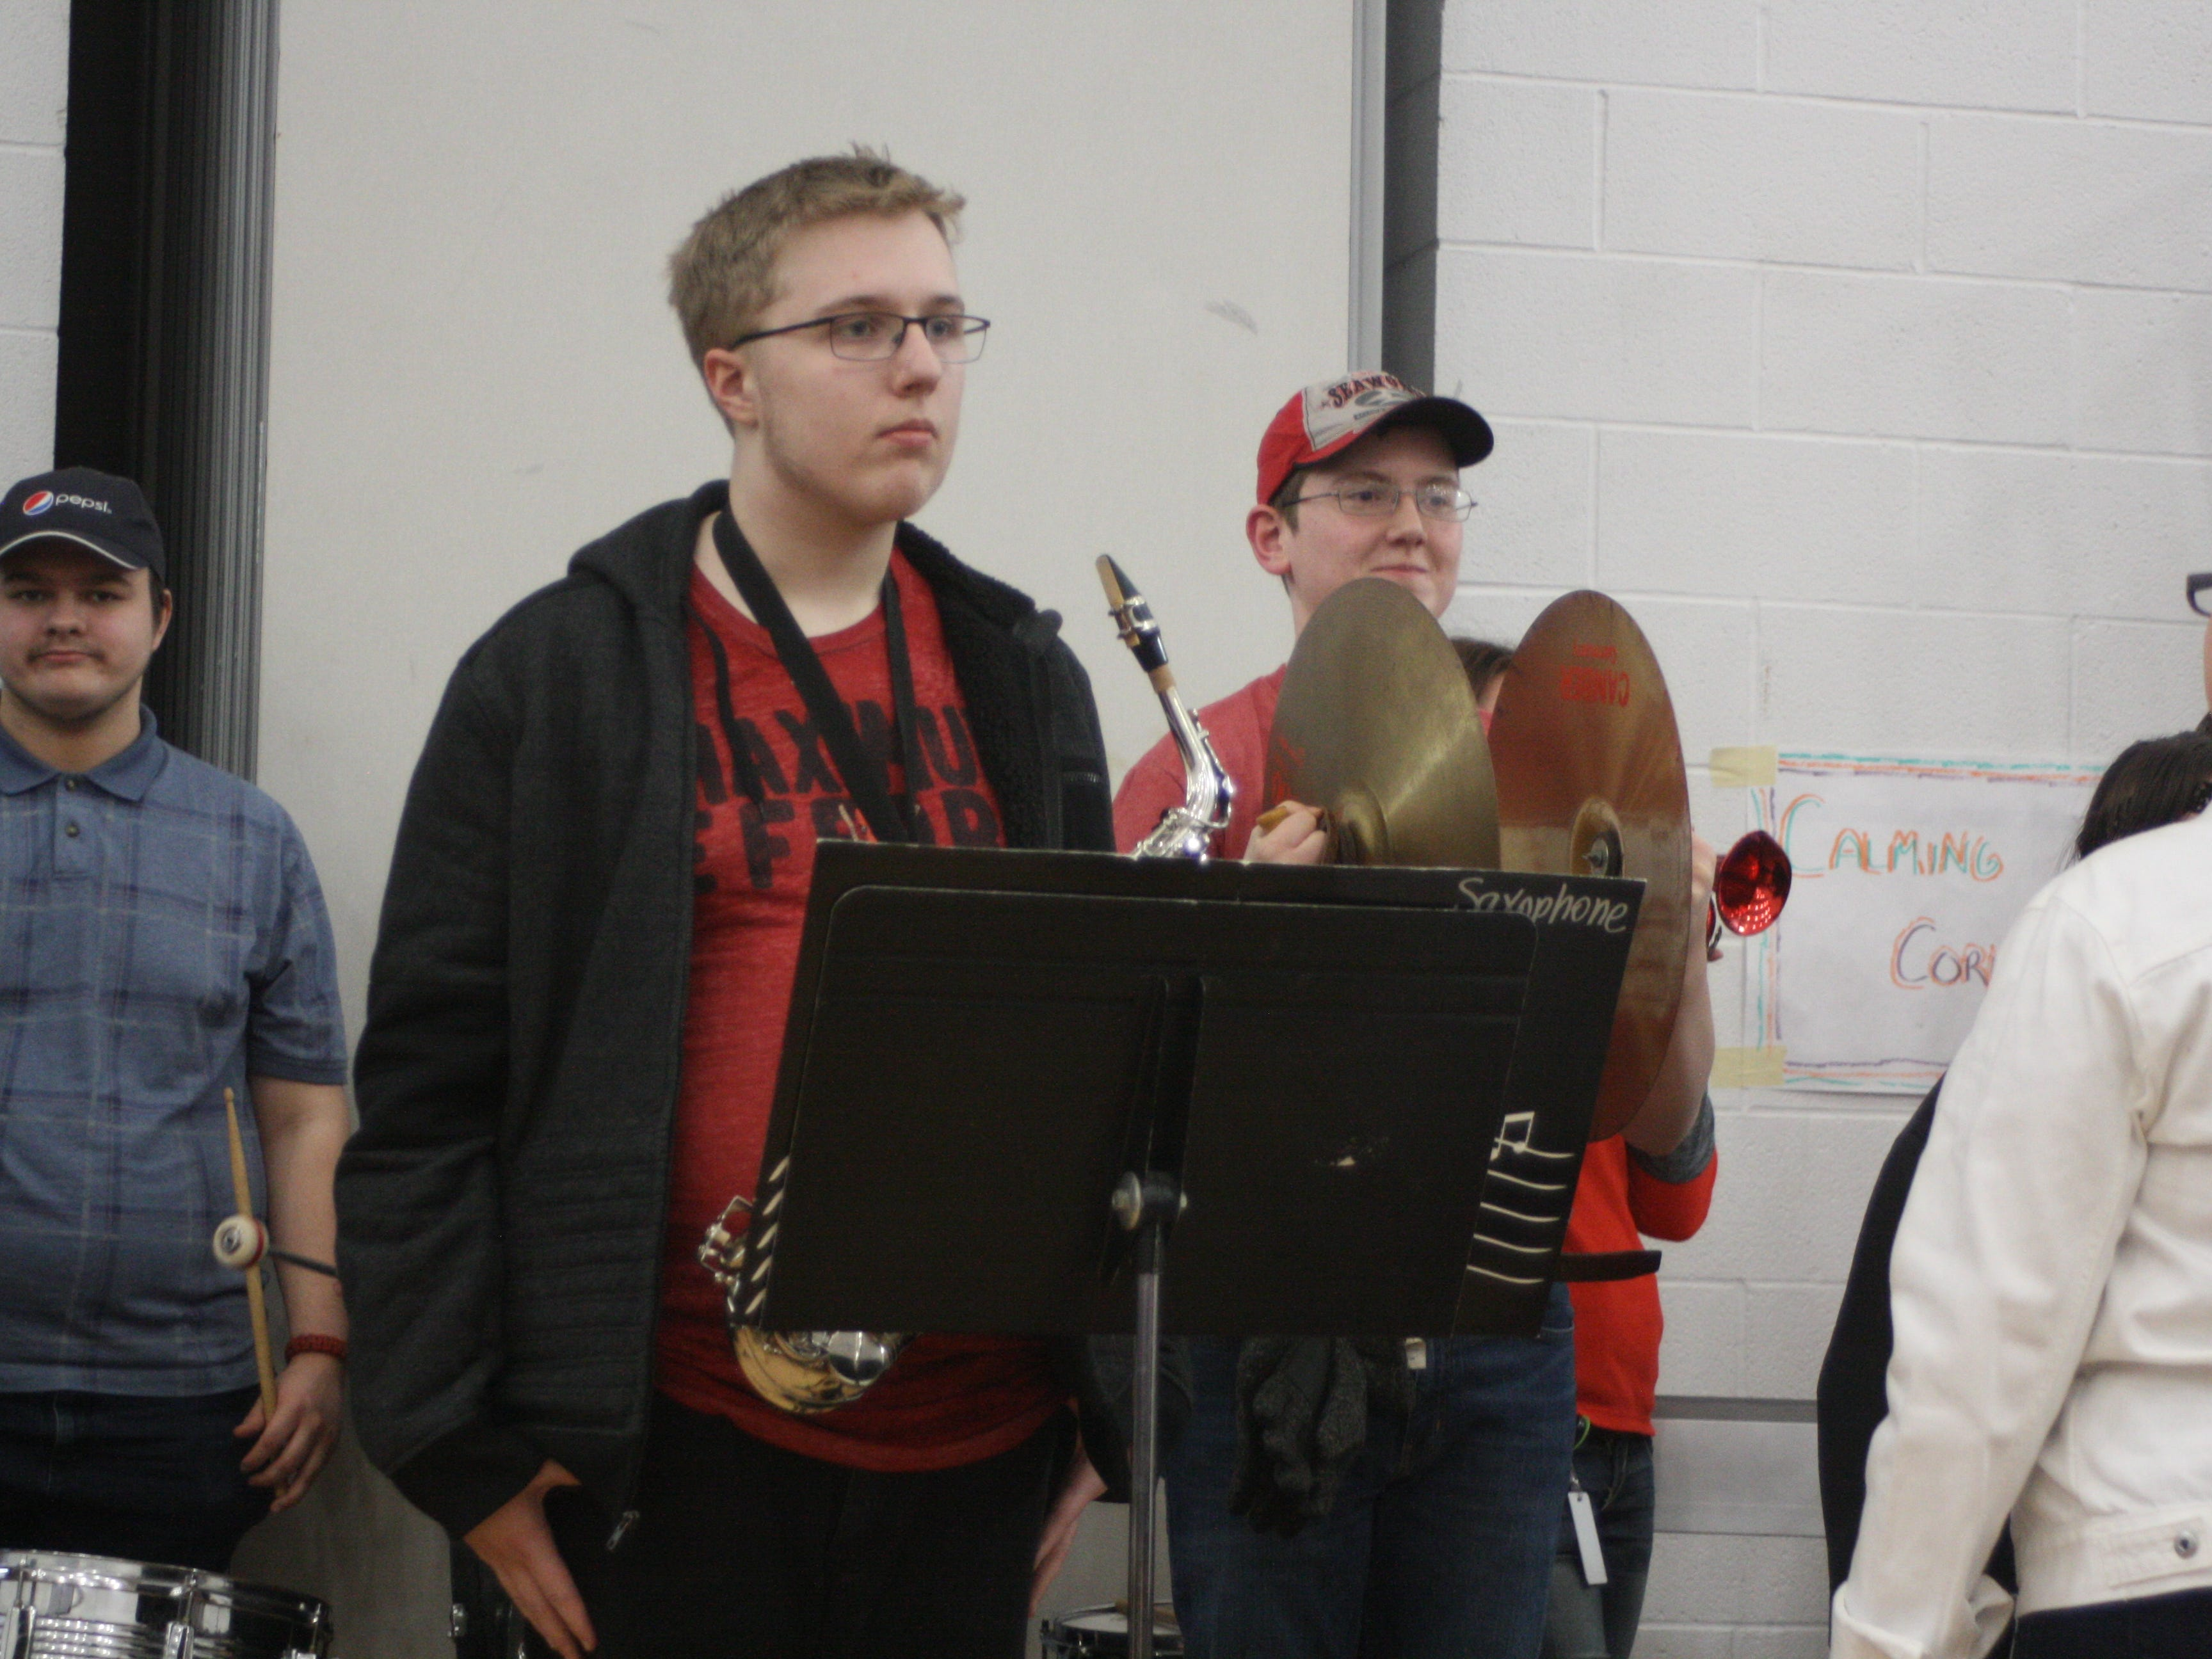 Jared Lamb, a 16-year-old Tioga resident, will travel across the world toAbu Dhabi to attend the games from March 14-21. A pep rally in Jared's honor was held on the Broome-Tioga Boces main campus Friday afternoon.